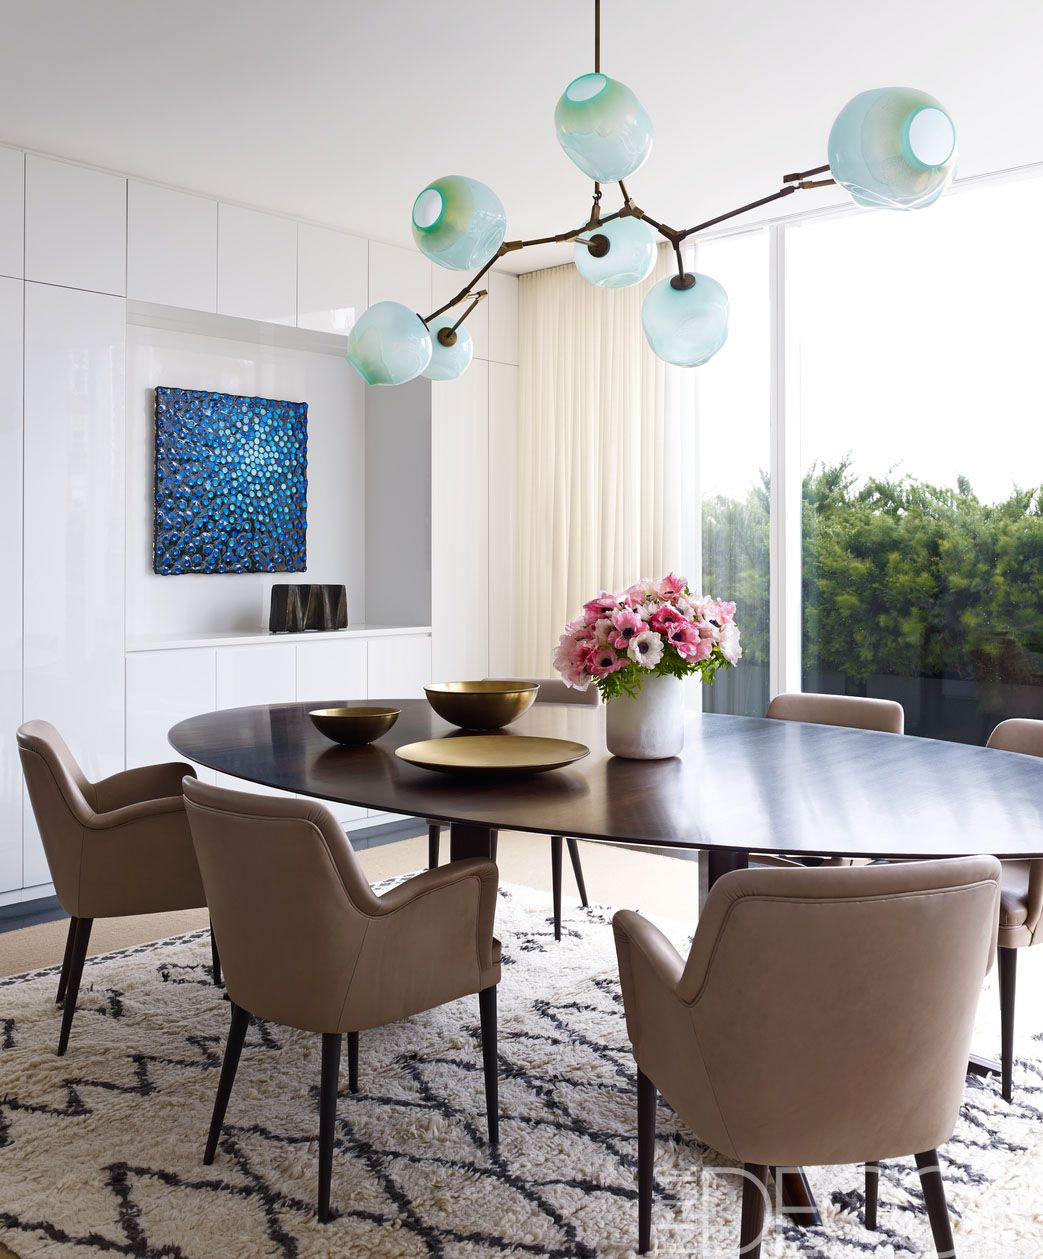 Design Dining Room Ideas 25 modern dining room decorating ideas contemporary furniture